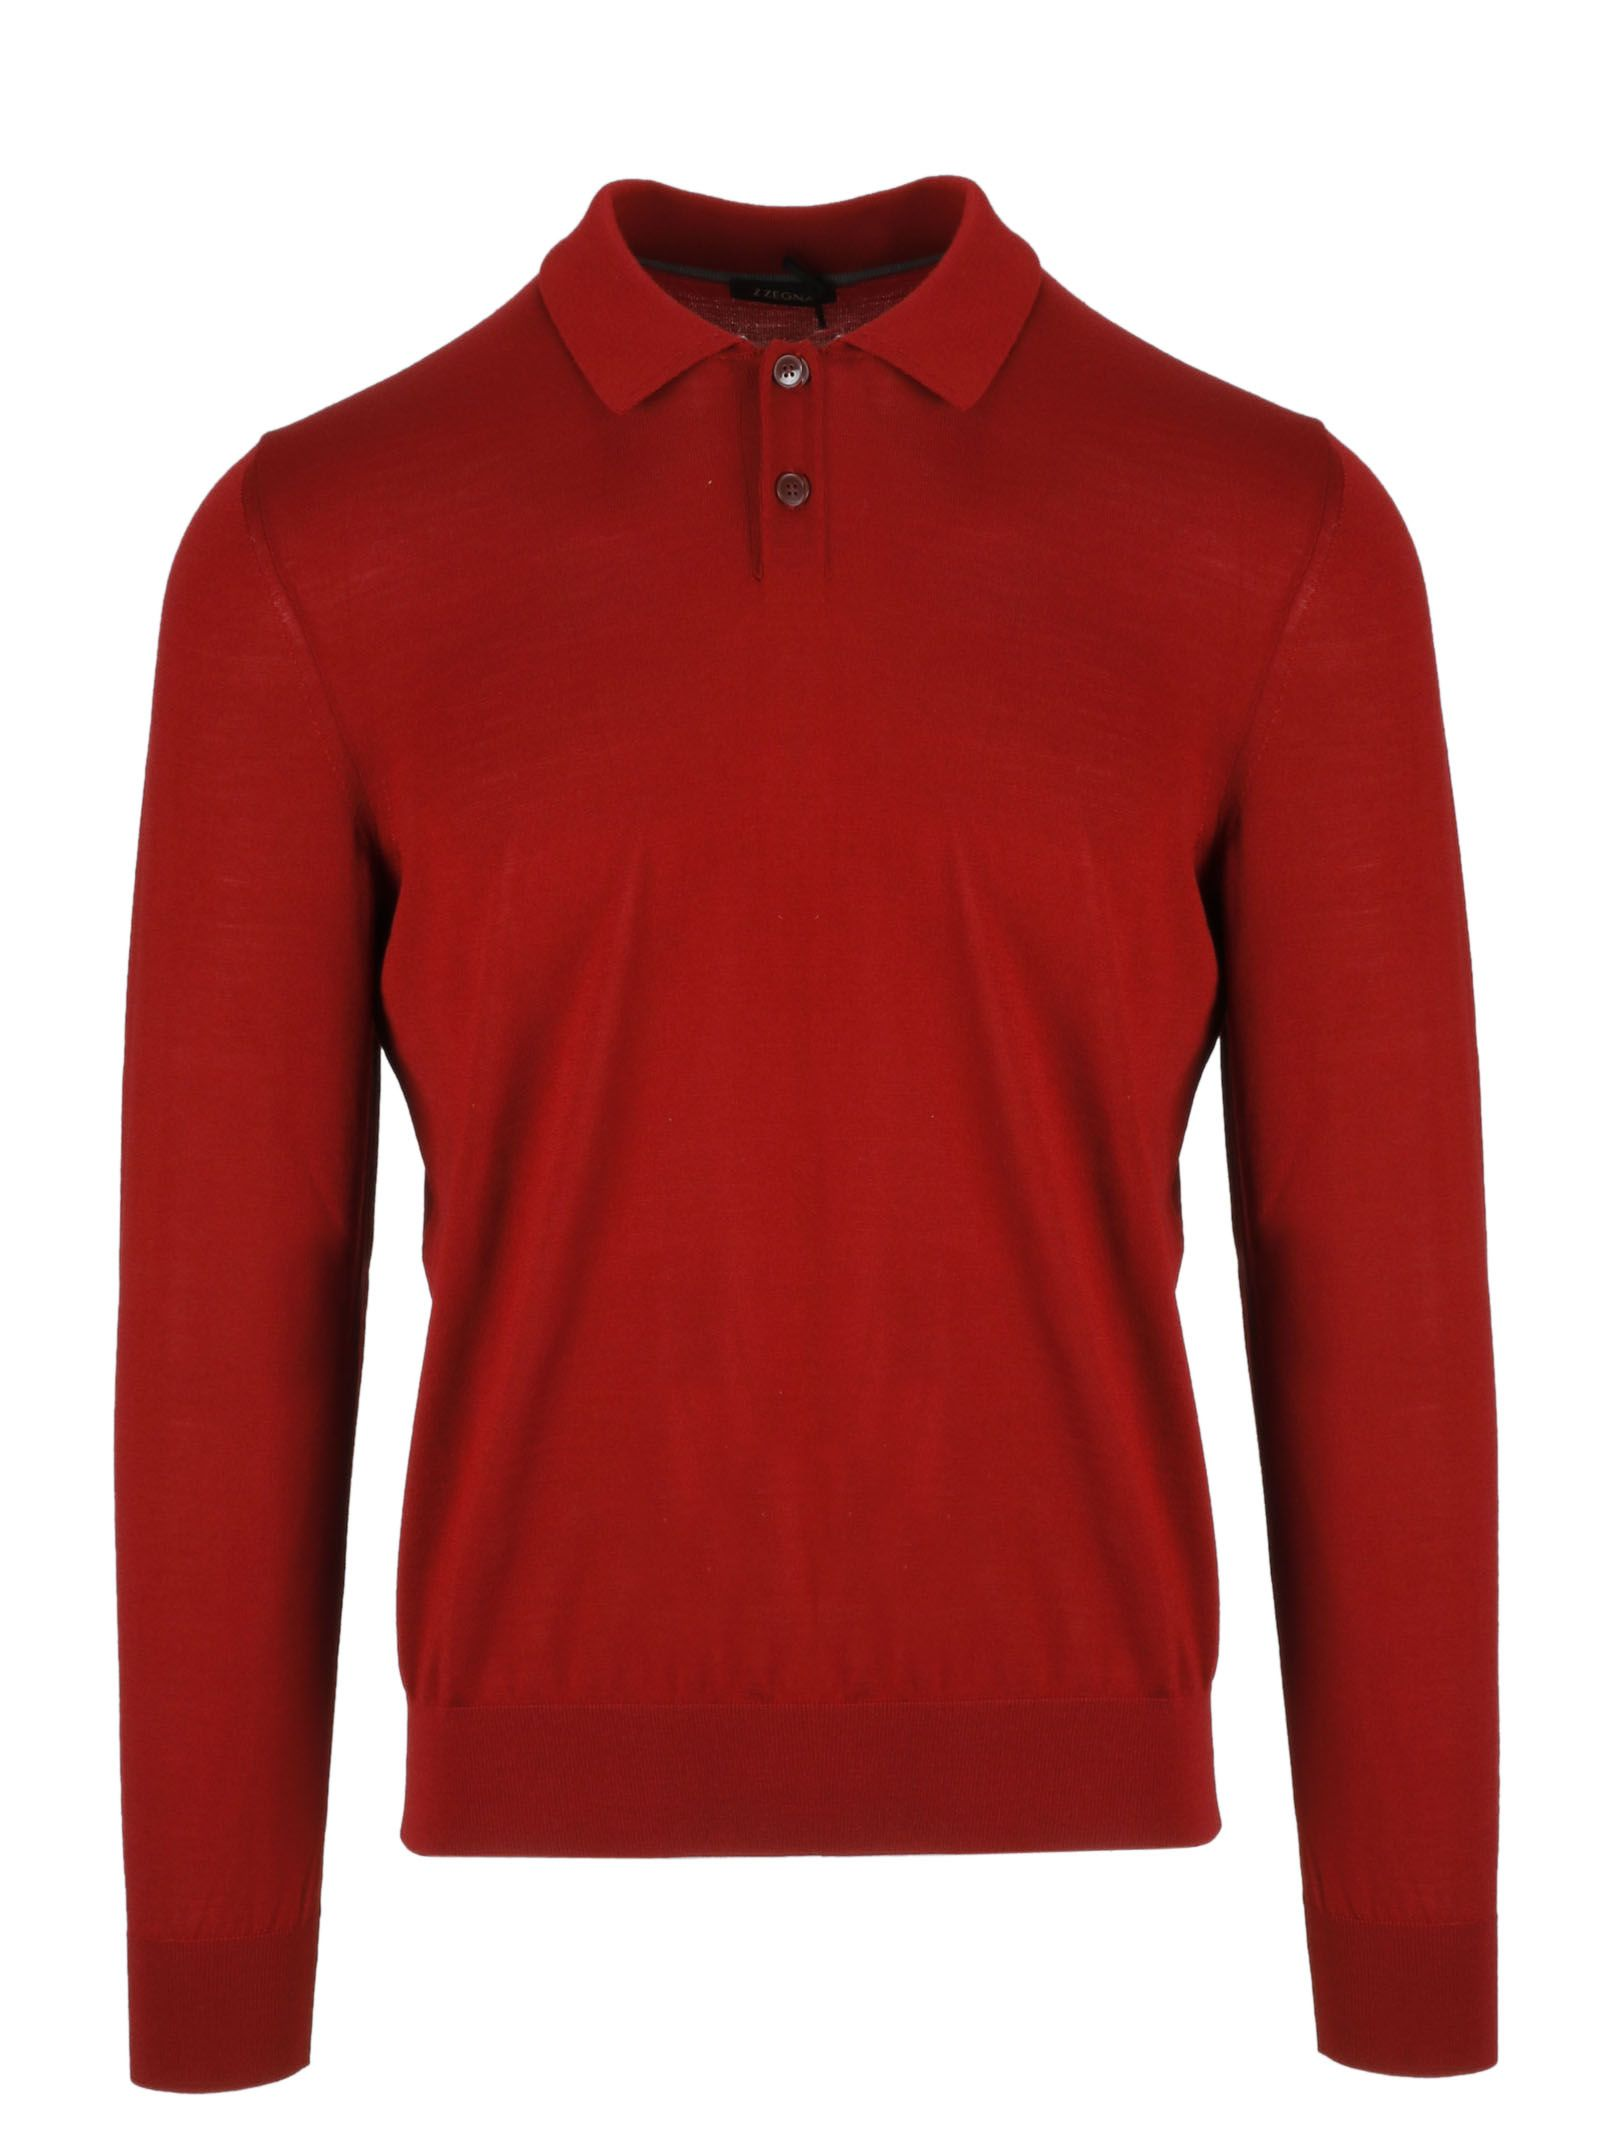 Z Zegna Long Sleeve Fitted Polo Shirt